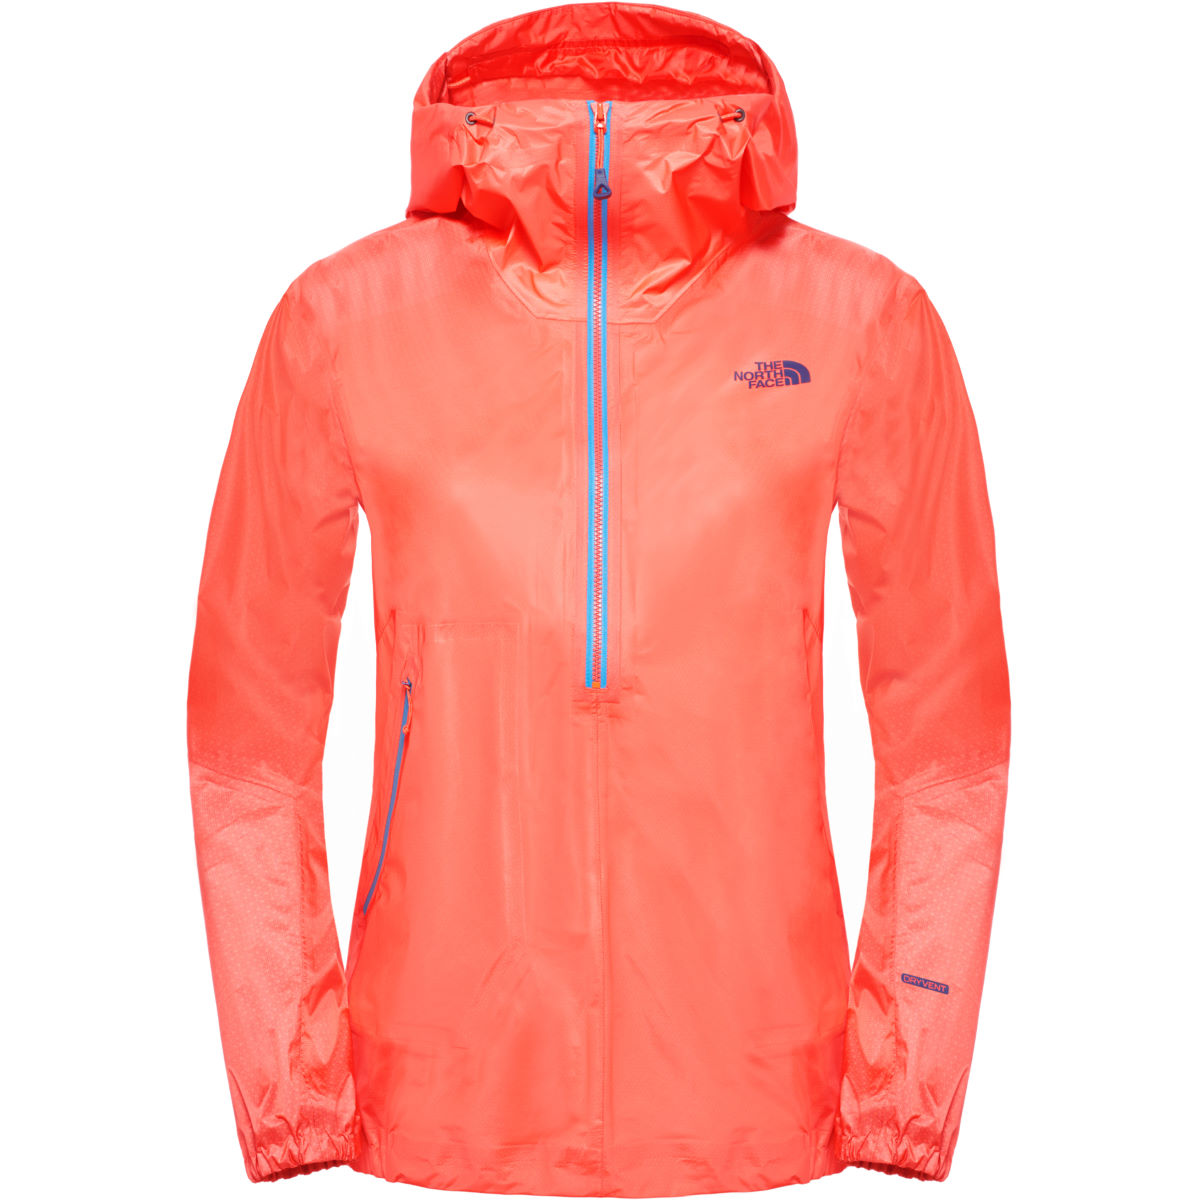 Image of Anorak Femme The North Face FuseForm Cesium (PE16) - M Orange | Vestes